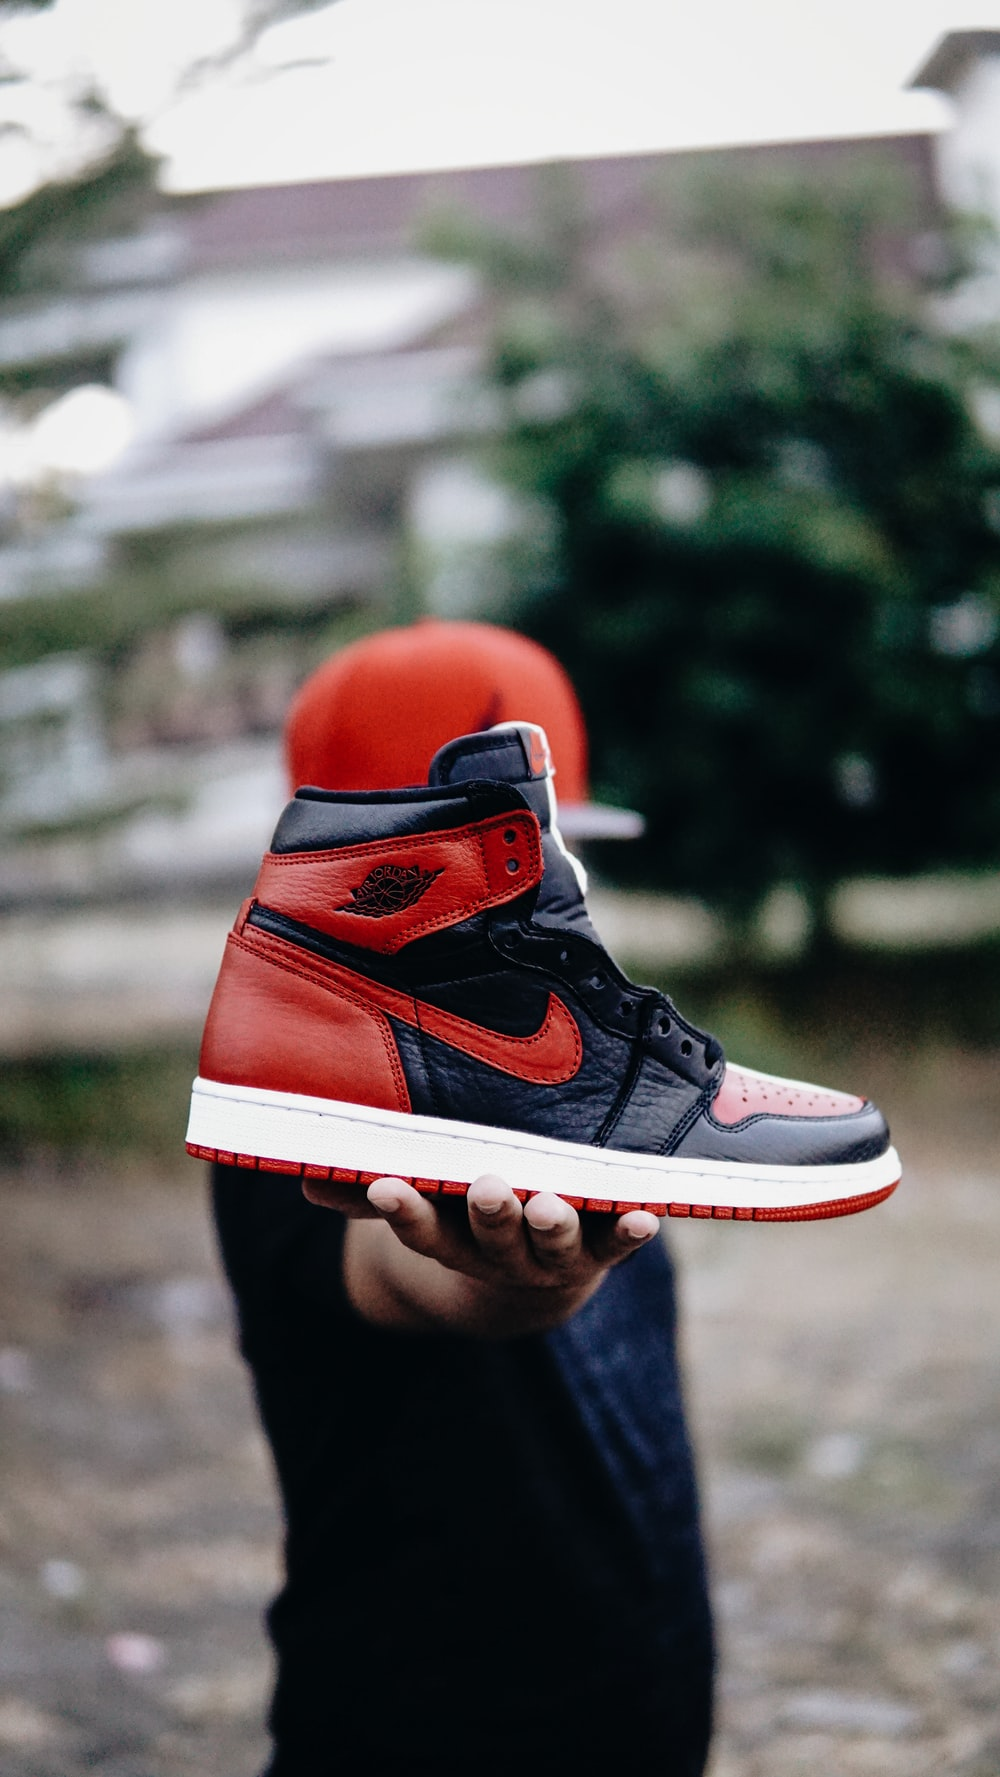 449a3a08f763e selective focus photo of person holding unpaired black and red Nike Air  Jordan 1 shoe